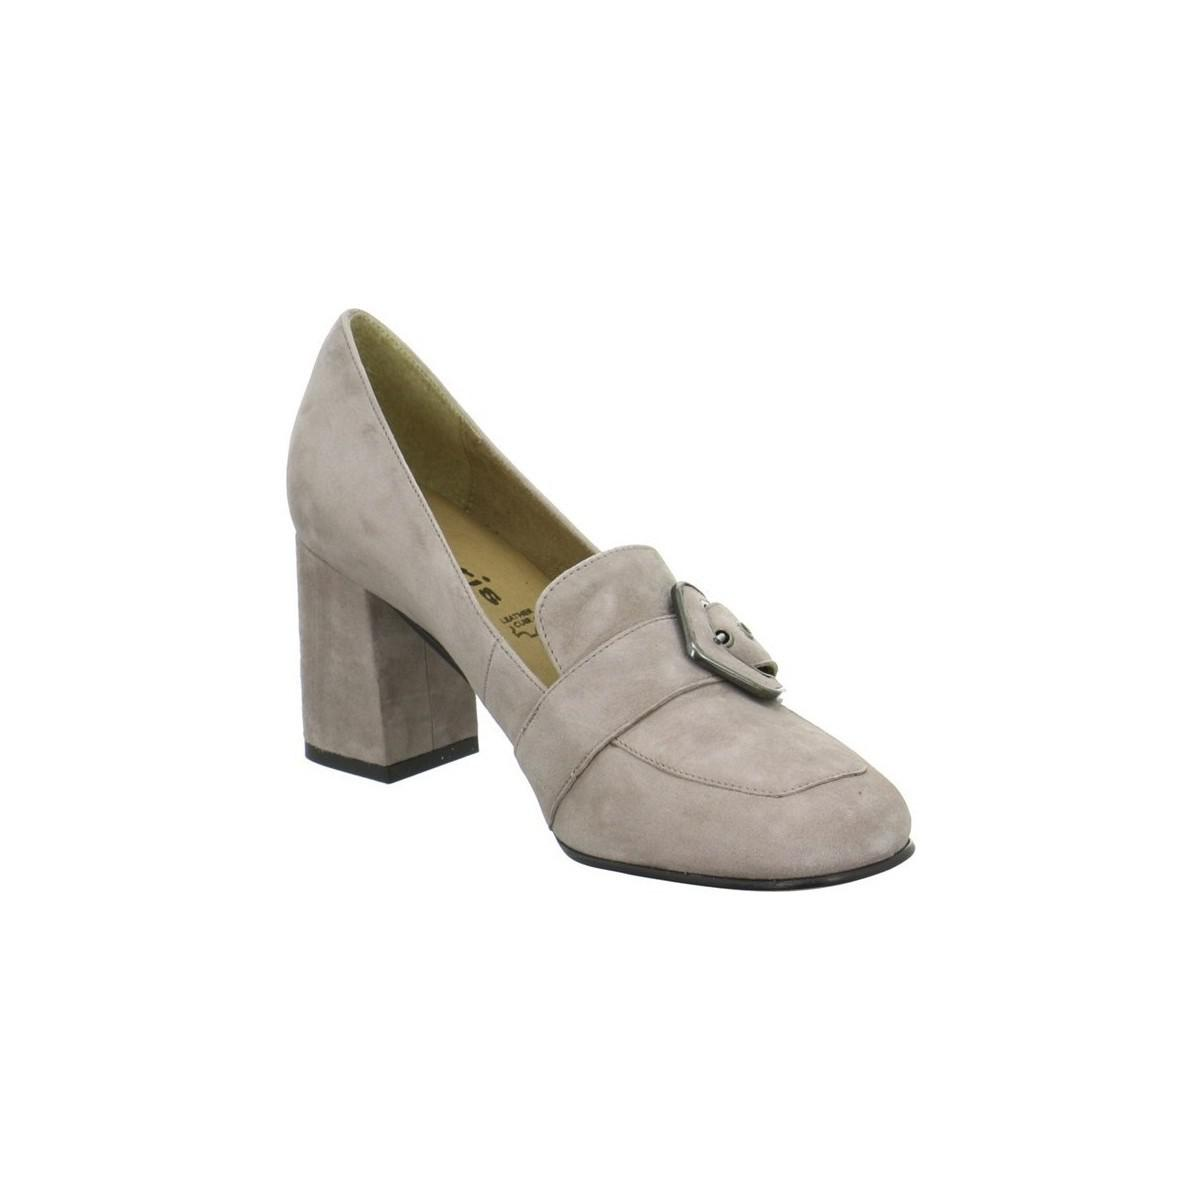 Very Cheap Price Clearance Classic Tamaris 112440139 341 women's Court Shoes in Lz3uW